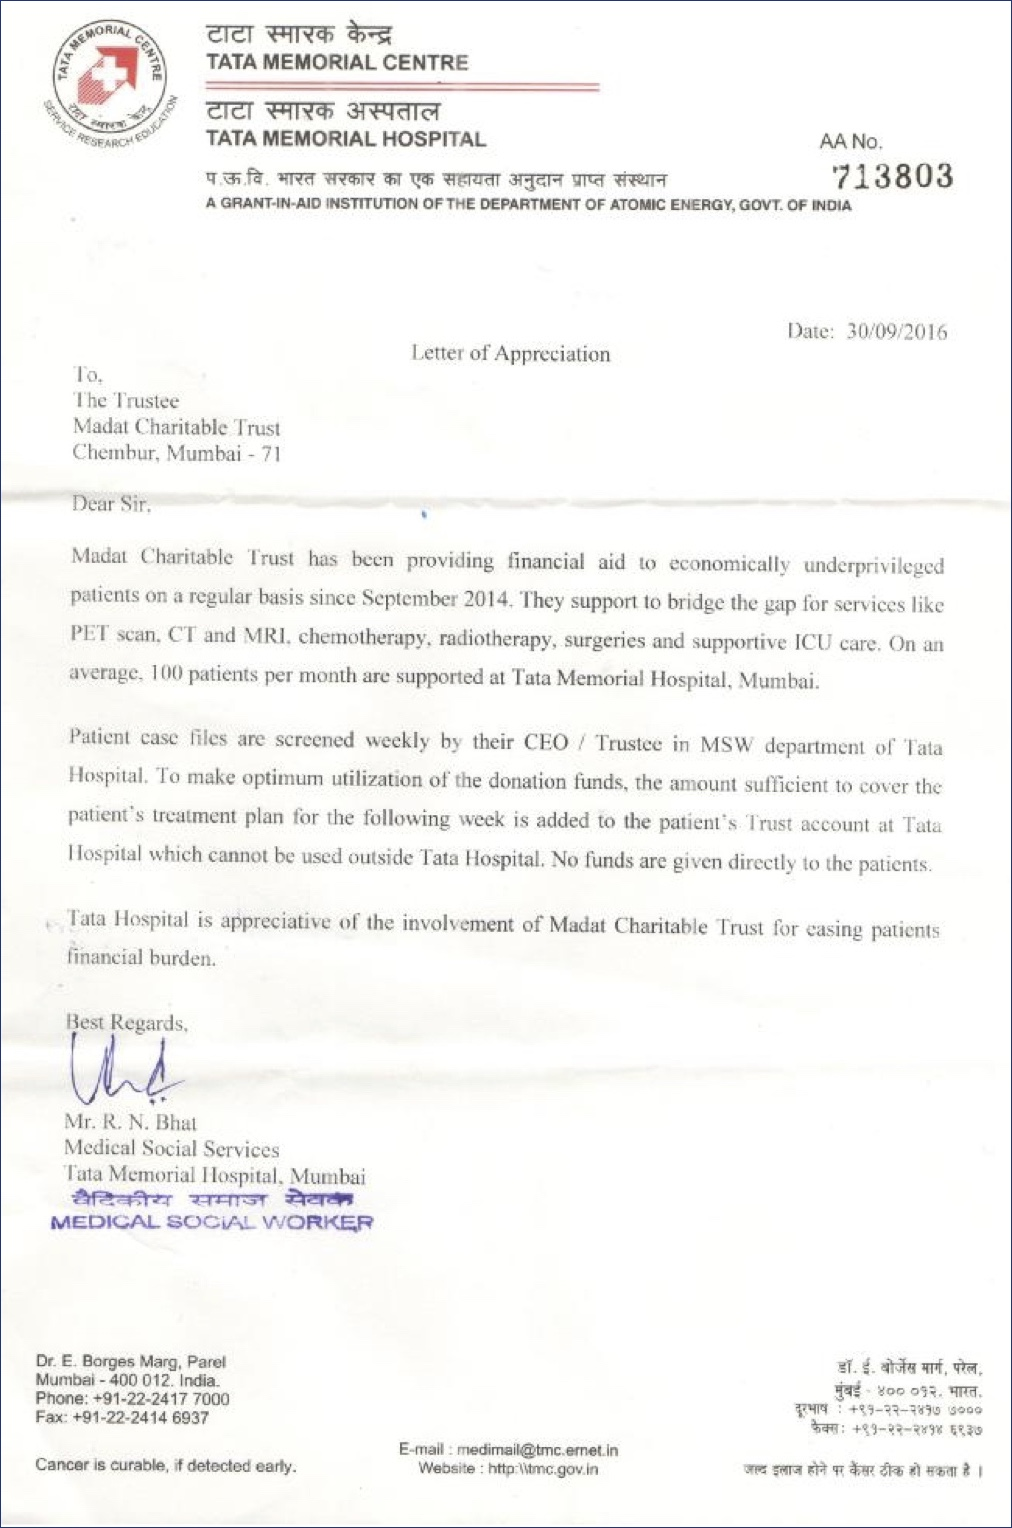 Appreciation letter from Tata Memorial Hospital